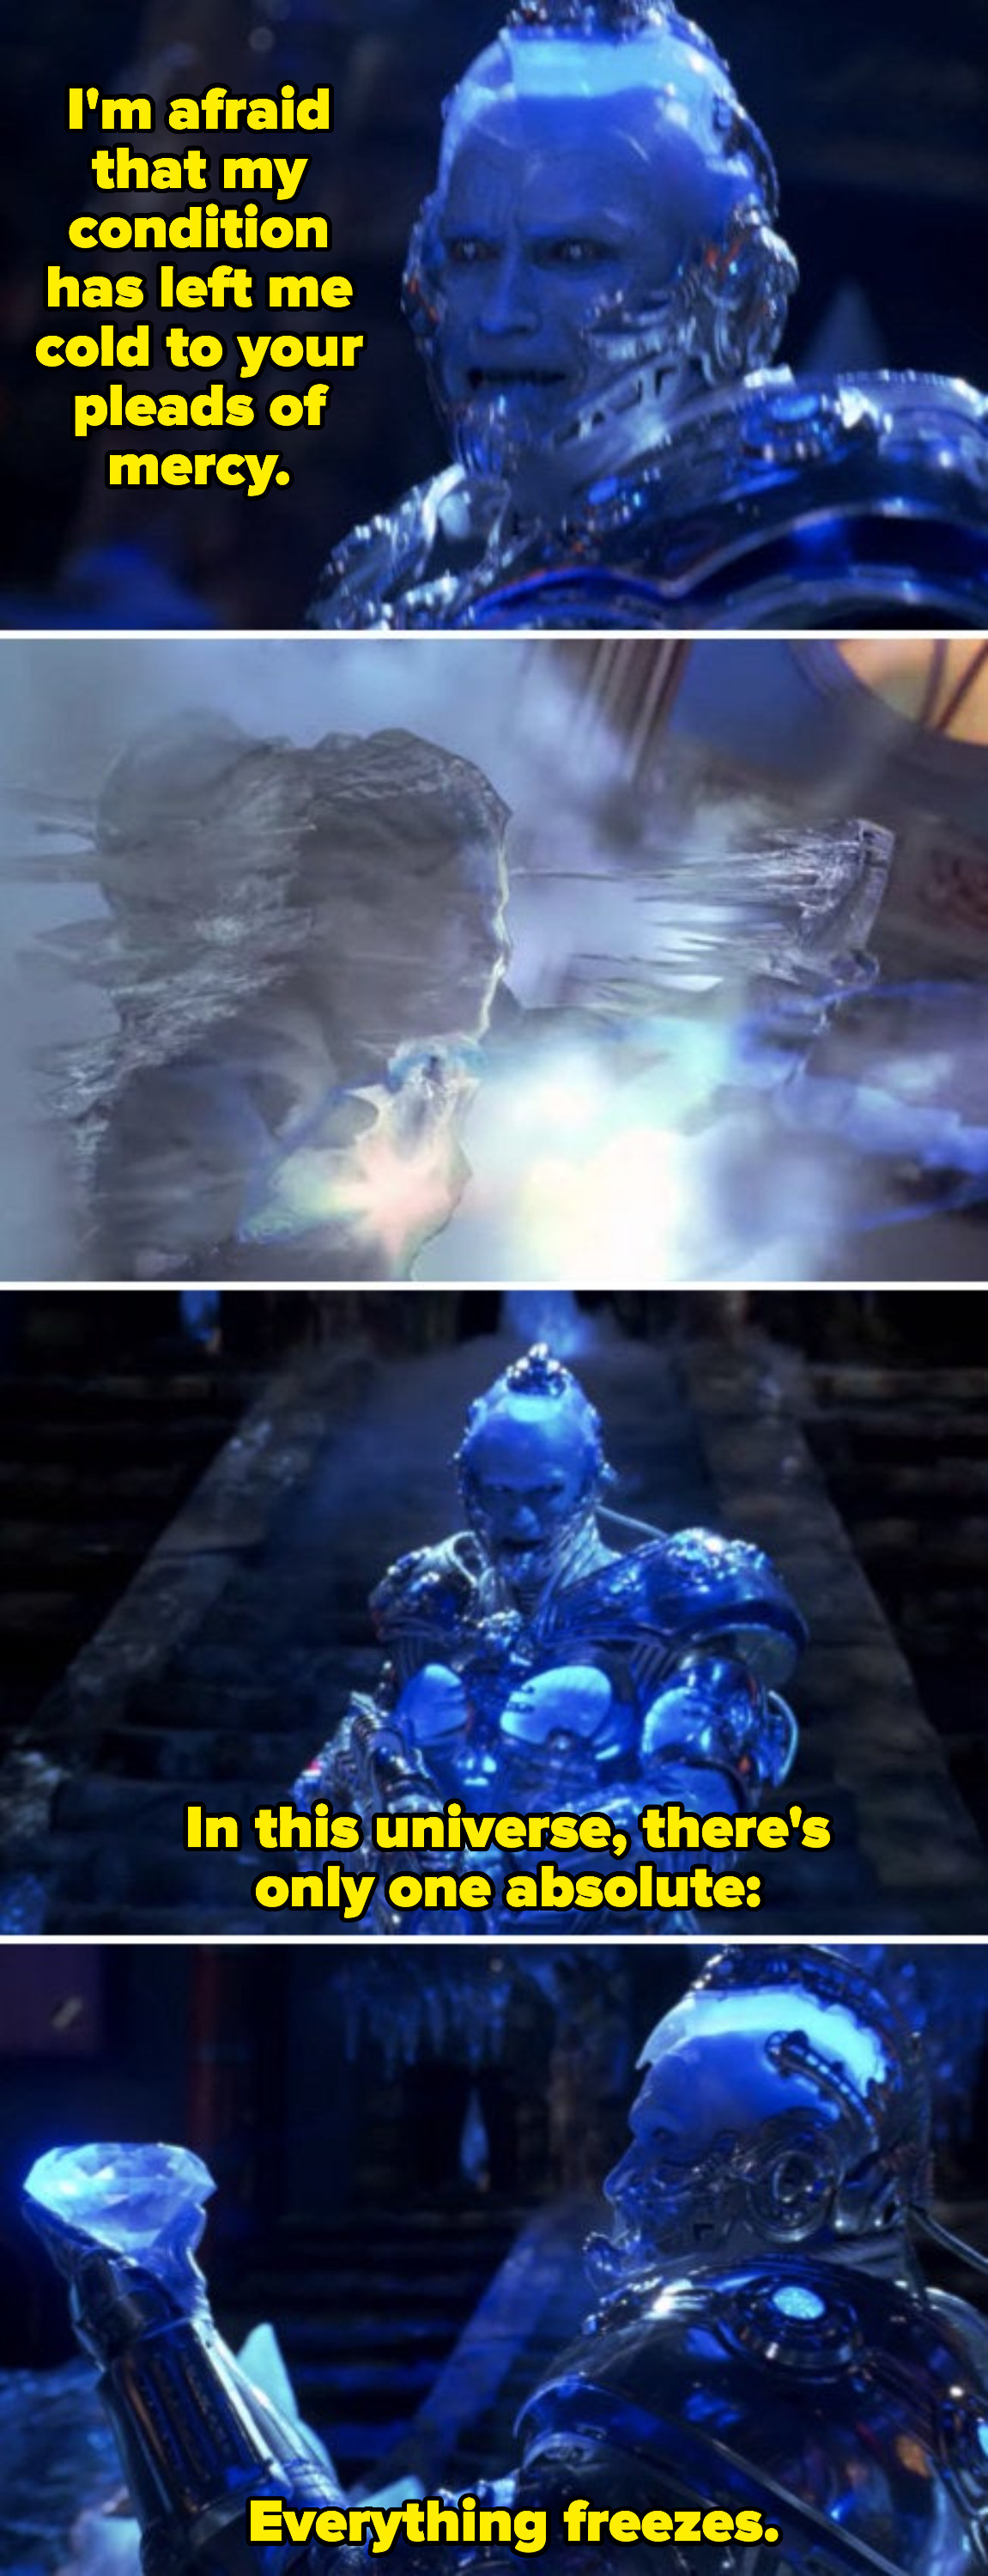 """Mr. Freeze talking to himself, saying: """"In this universe, there's only one absolute: Everything freezes"""""""